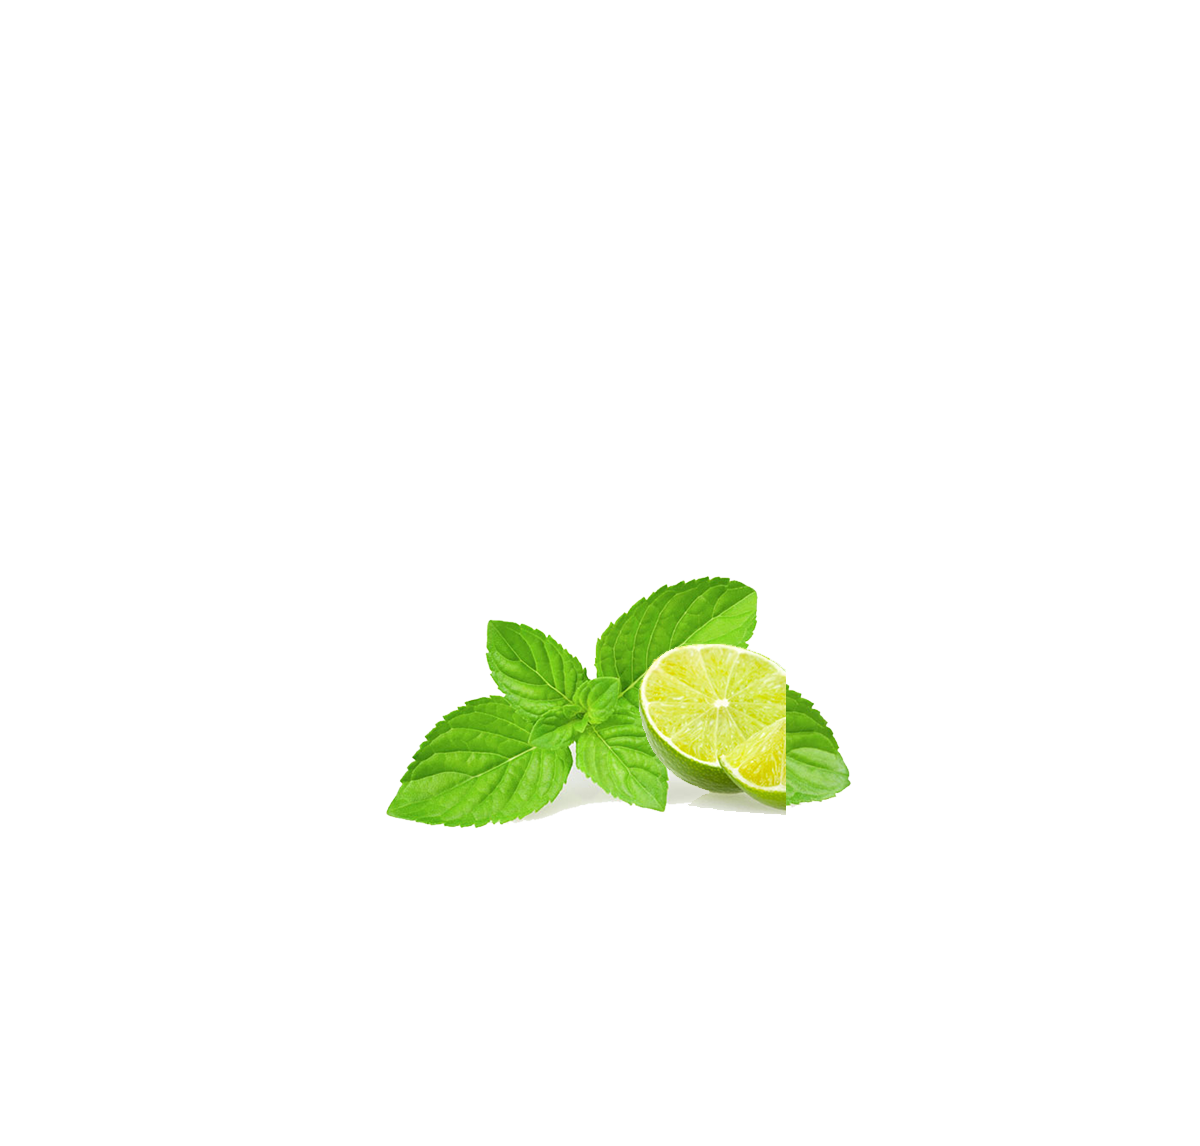 Leaf Download Clip art - Mint, lemon 1200*1146 transprent Png Free ...